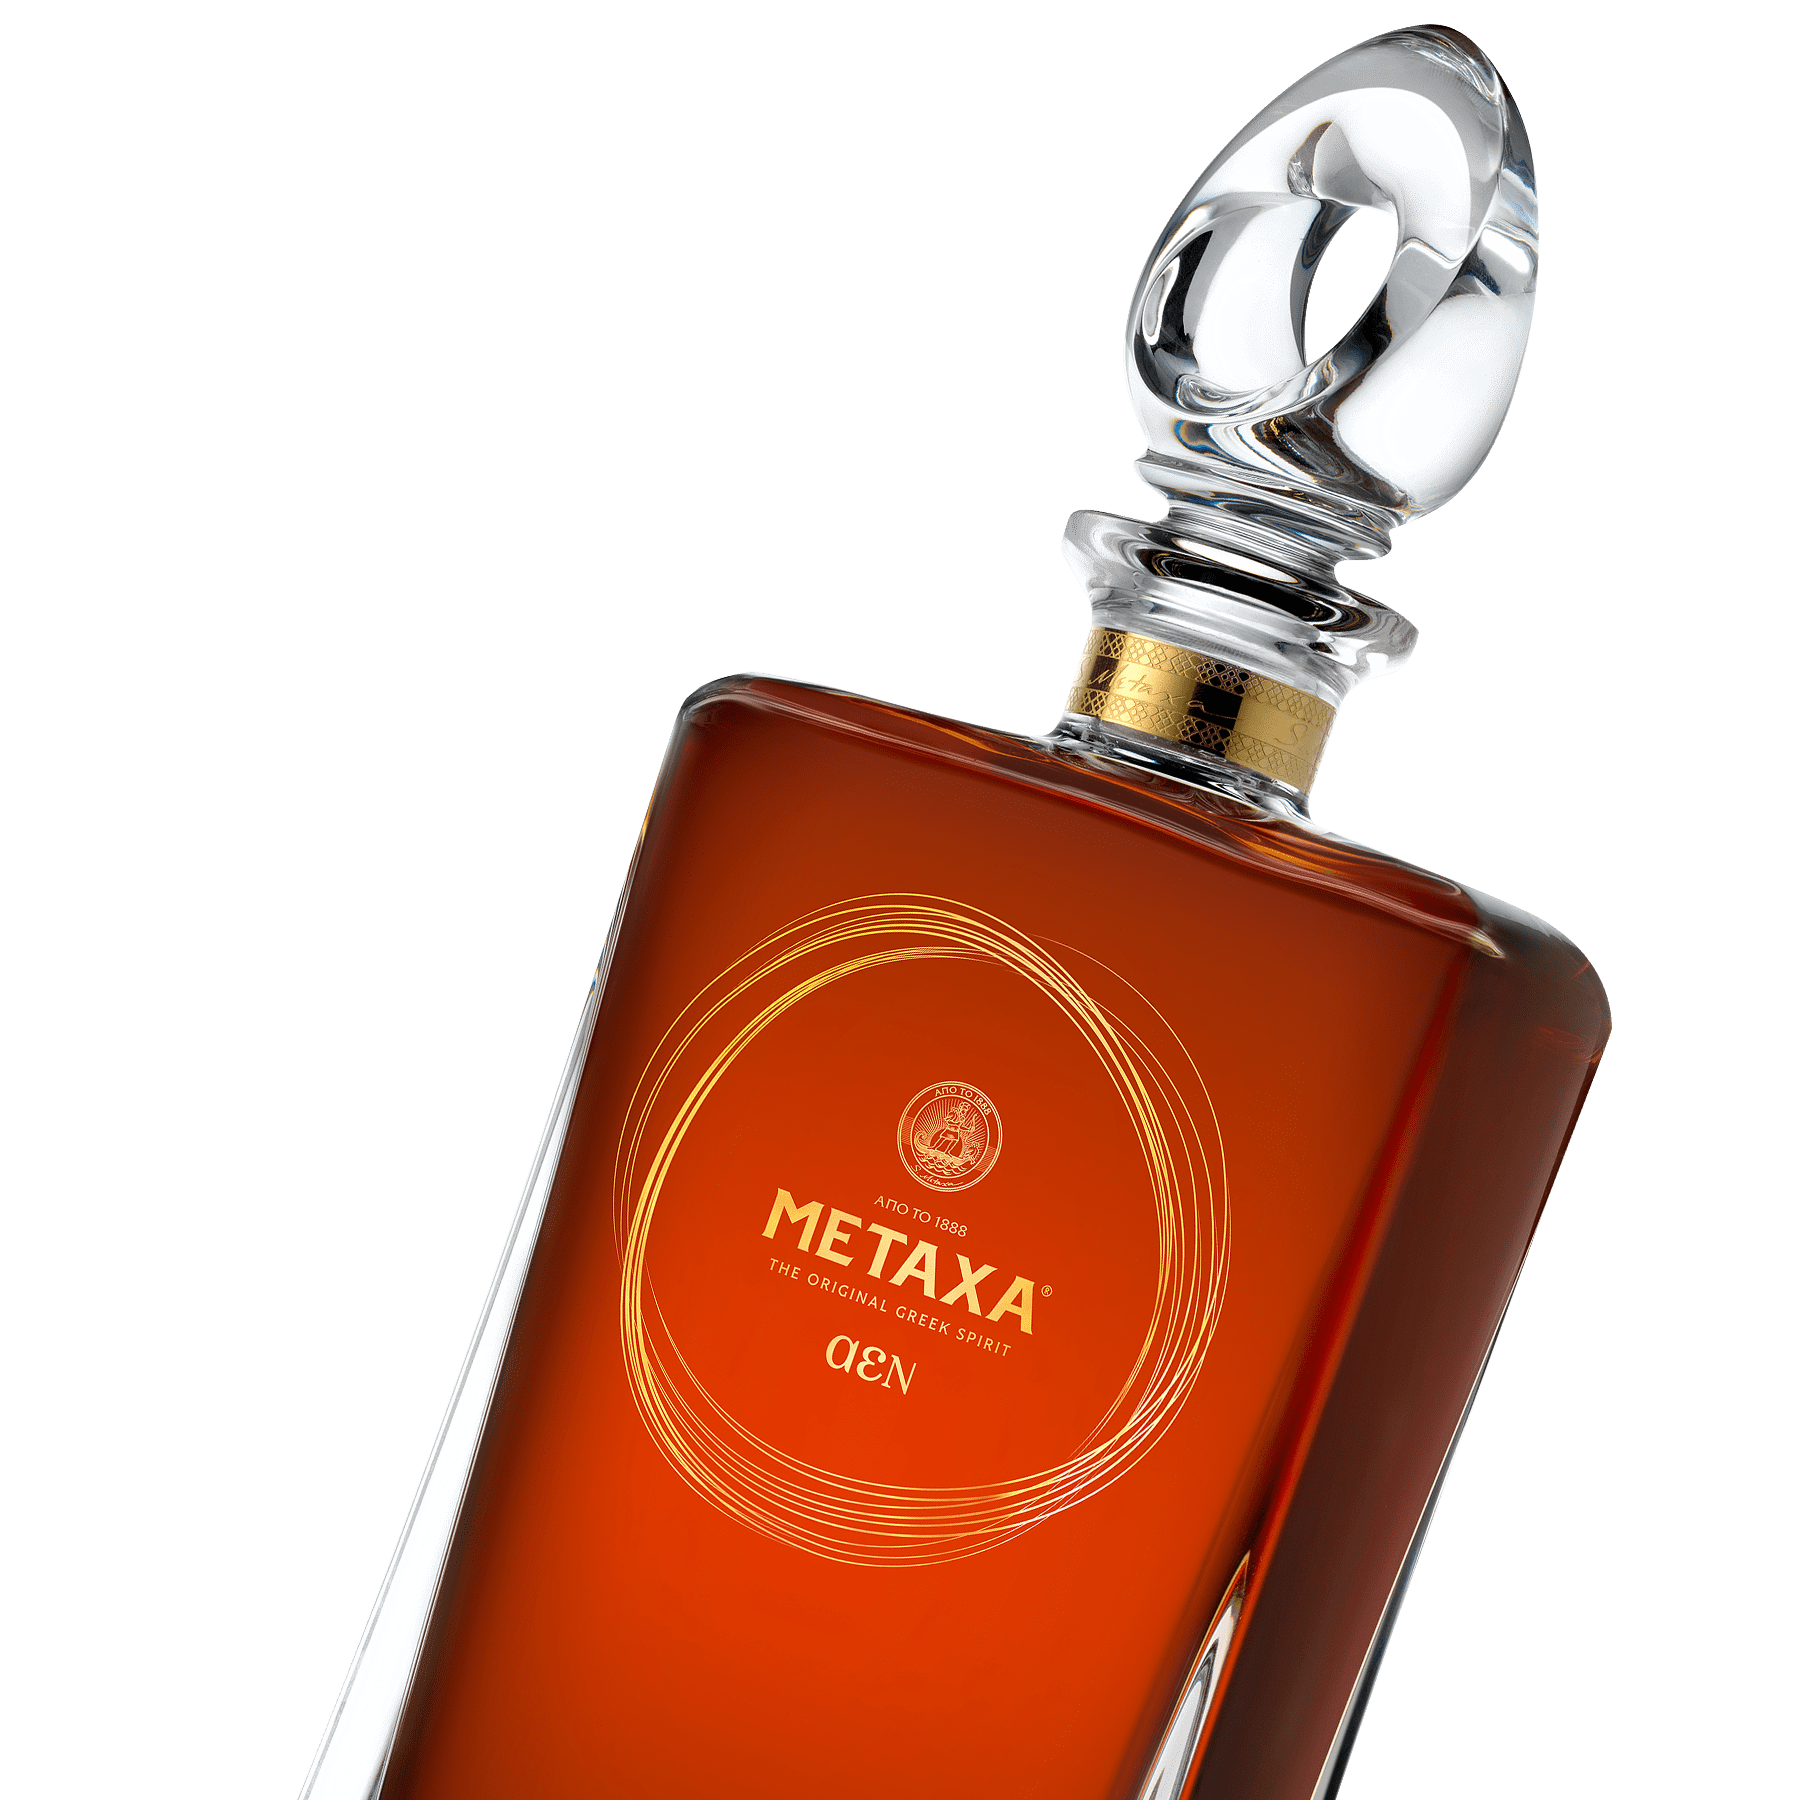 METAXA AEN Cask No 2 – Despina